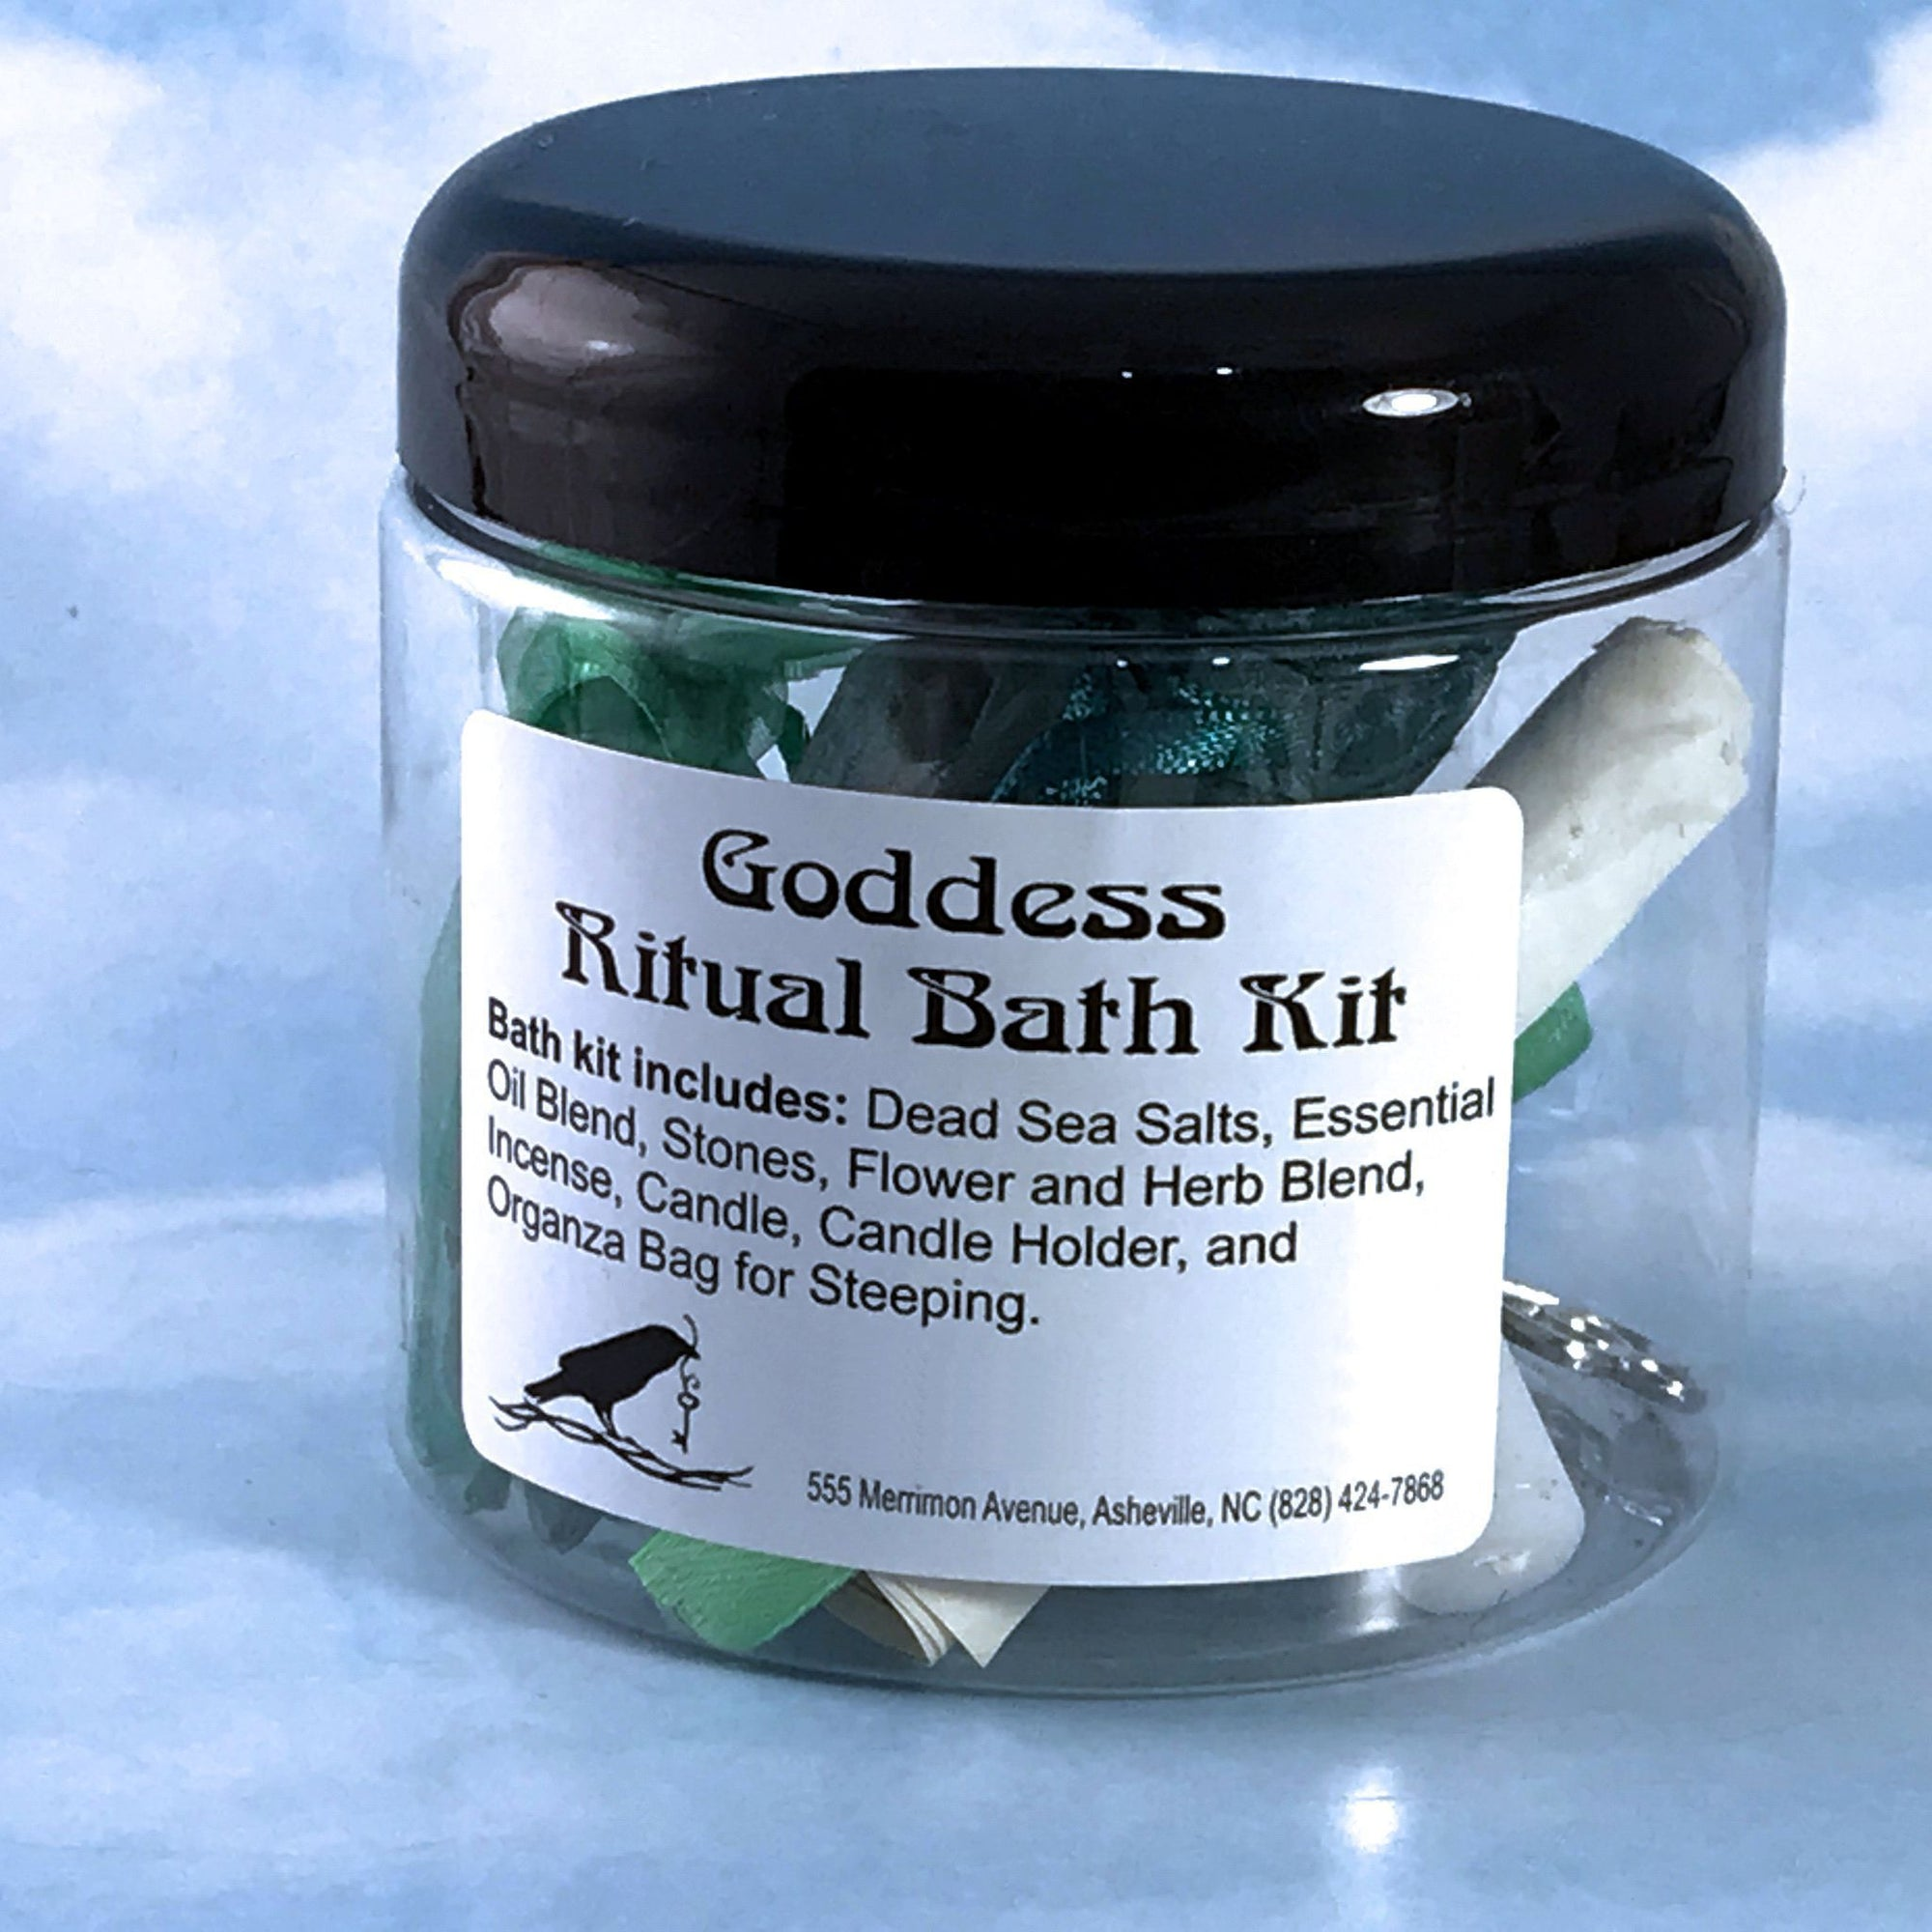 Goddess Ritual Bath Kit